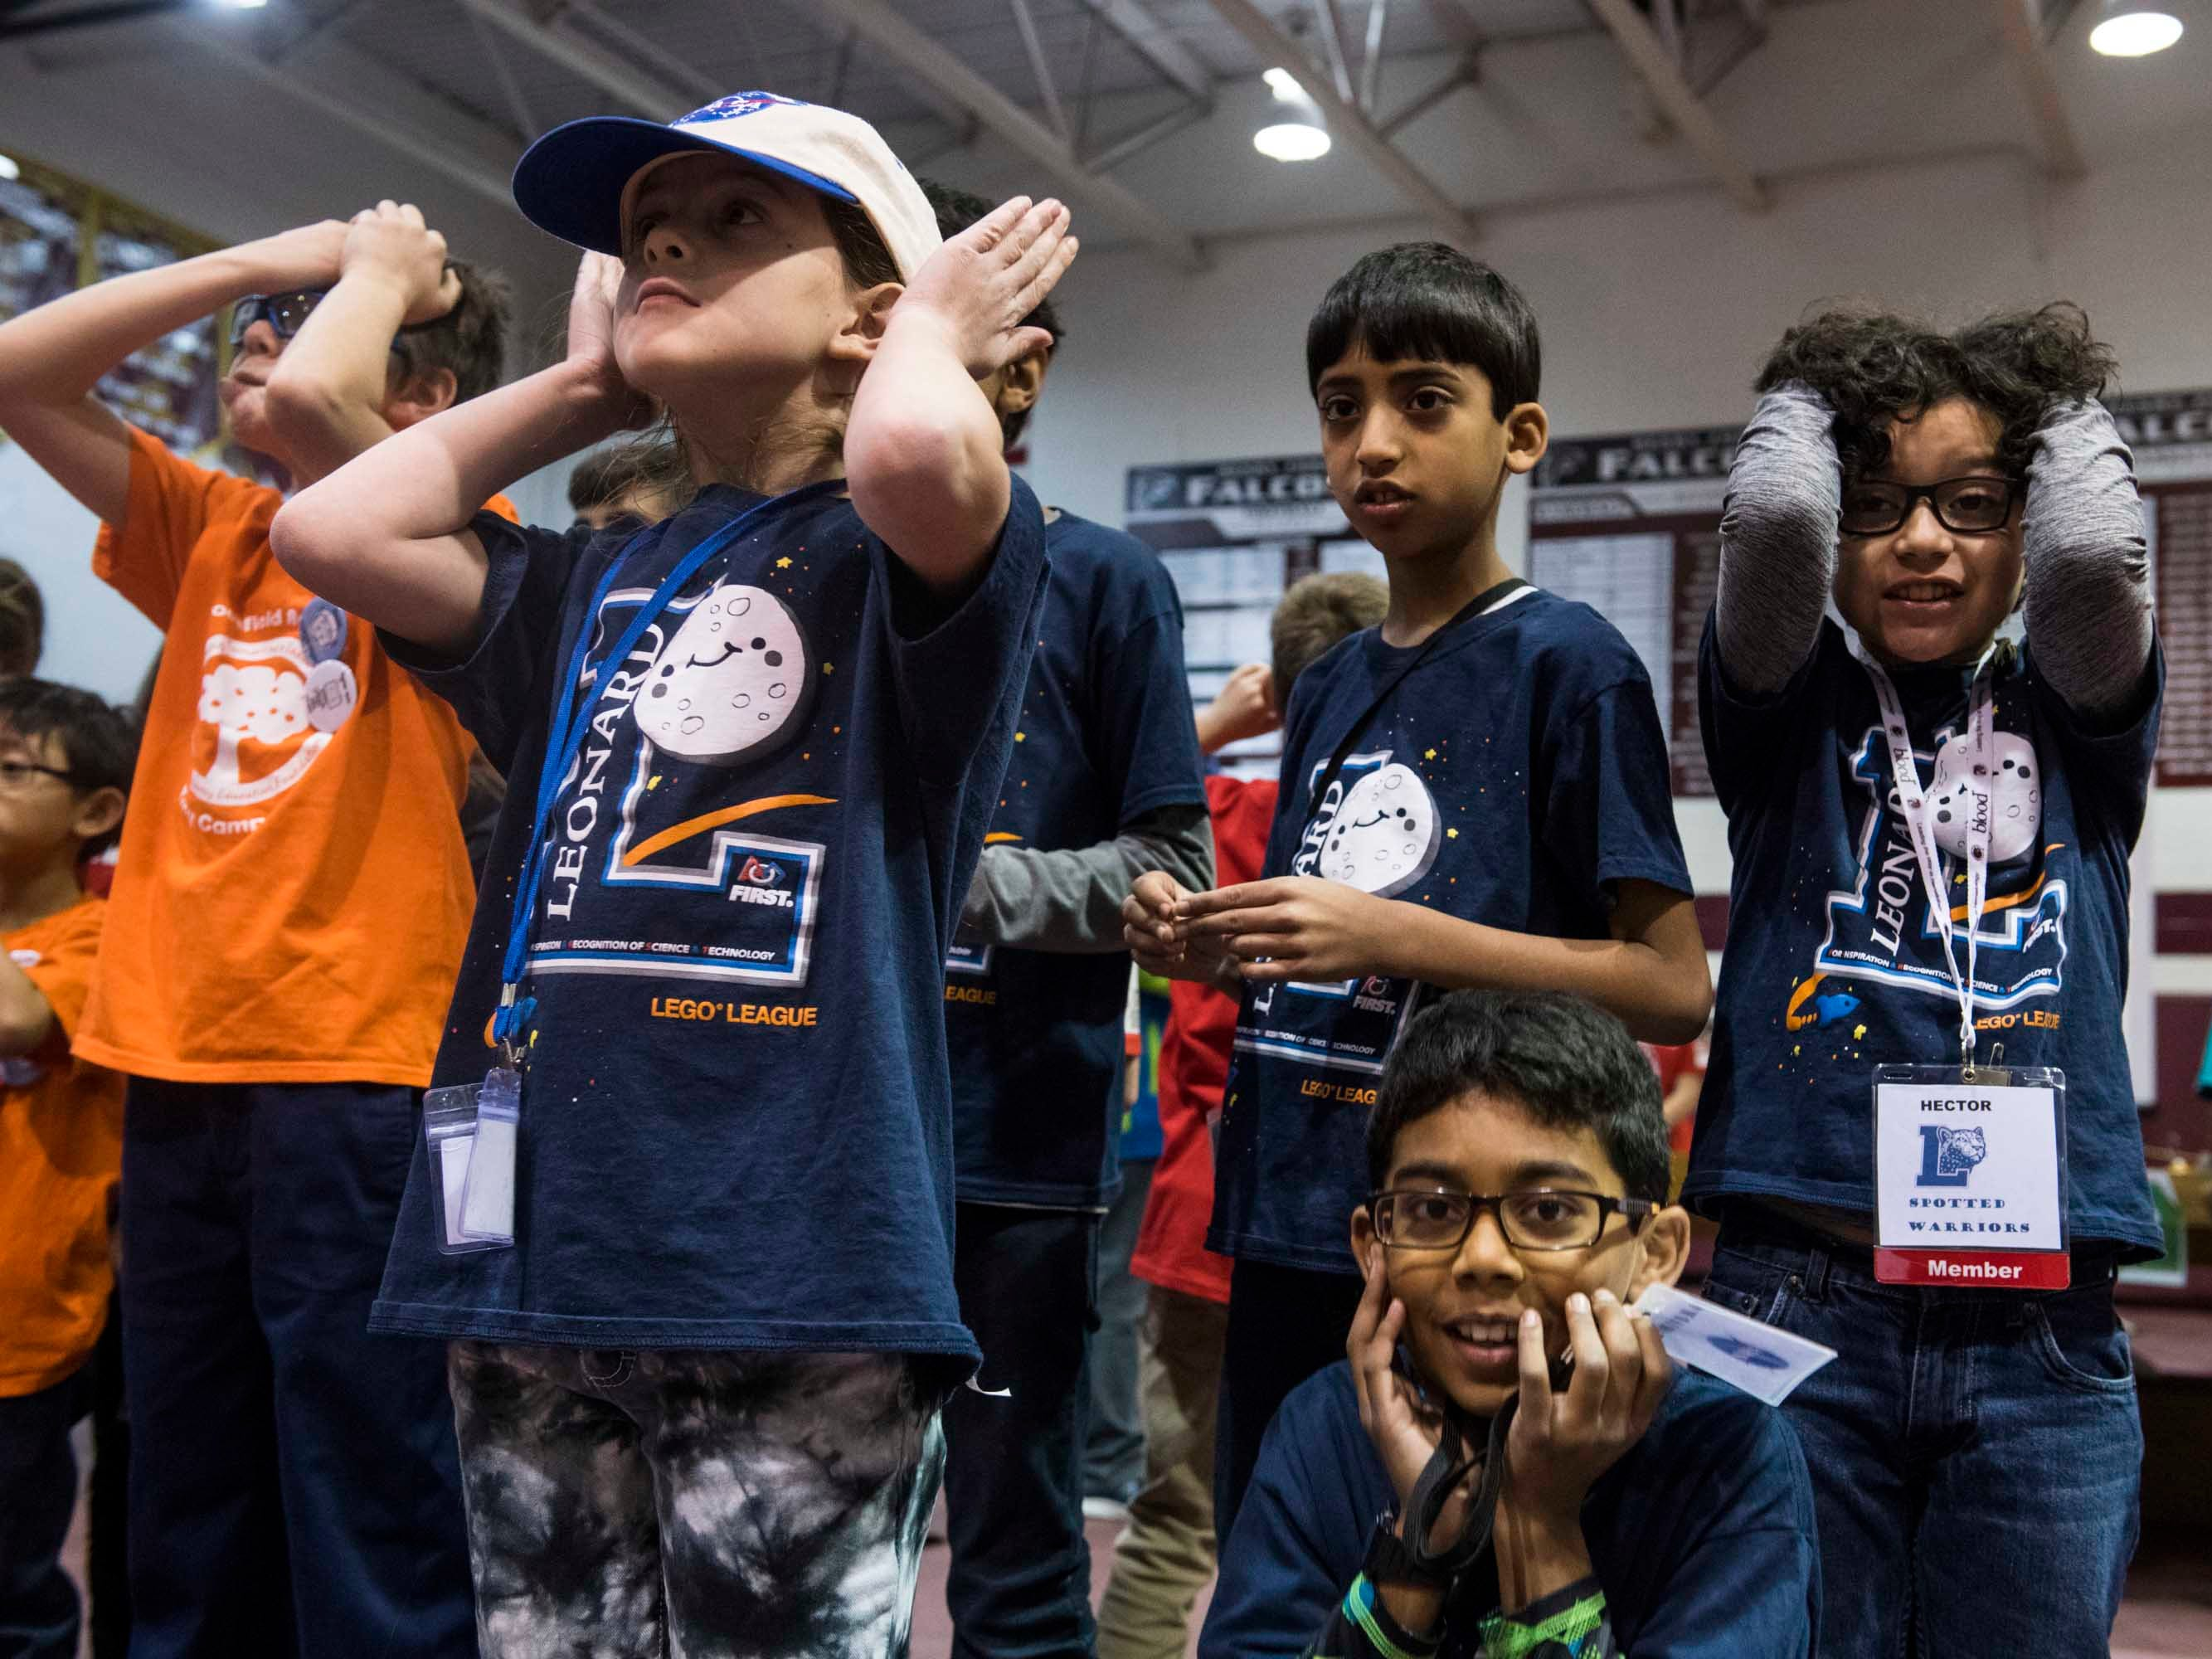 Members of the Spotted Warriors robotics team anxiously watch their teammates compete at the annual UCS ThunderQuest.